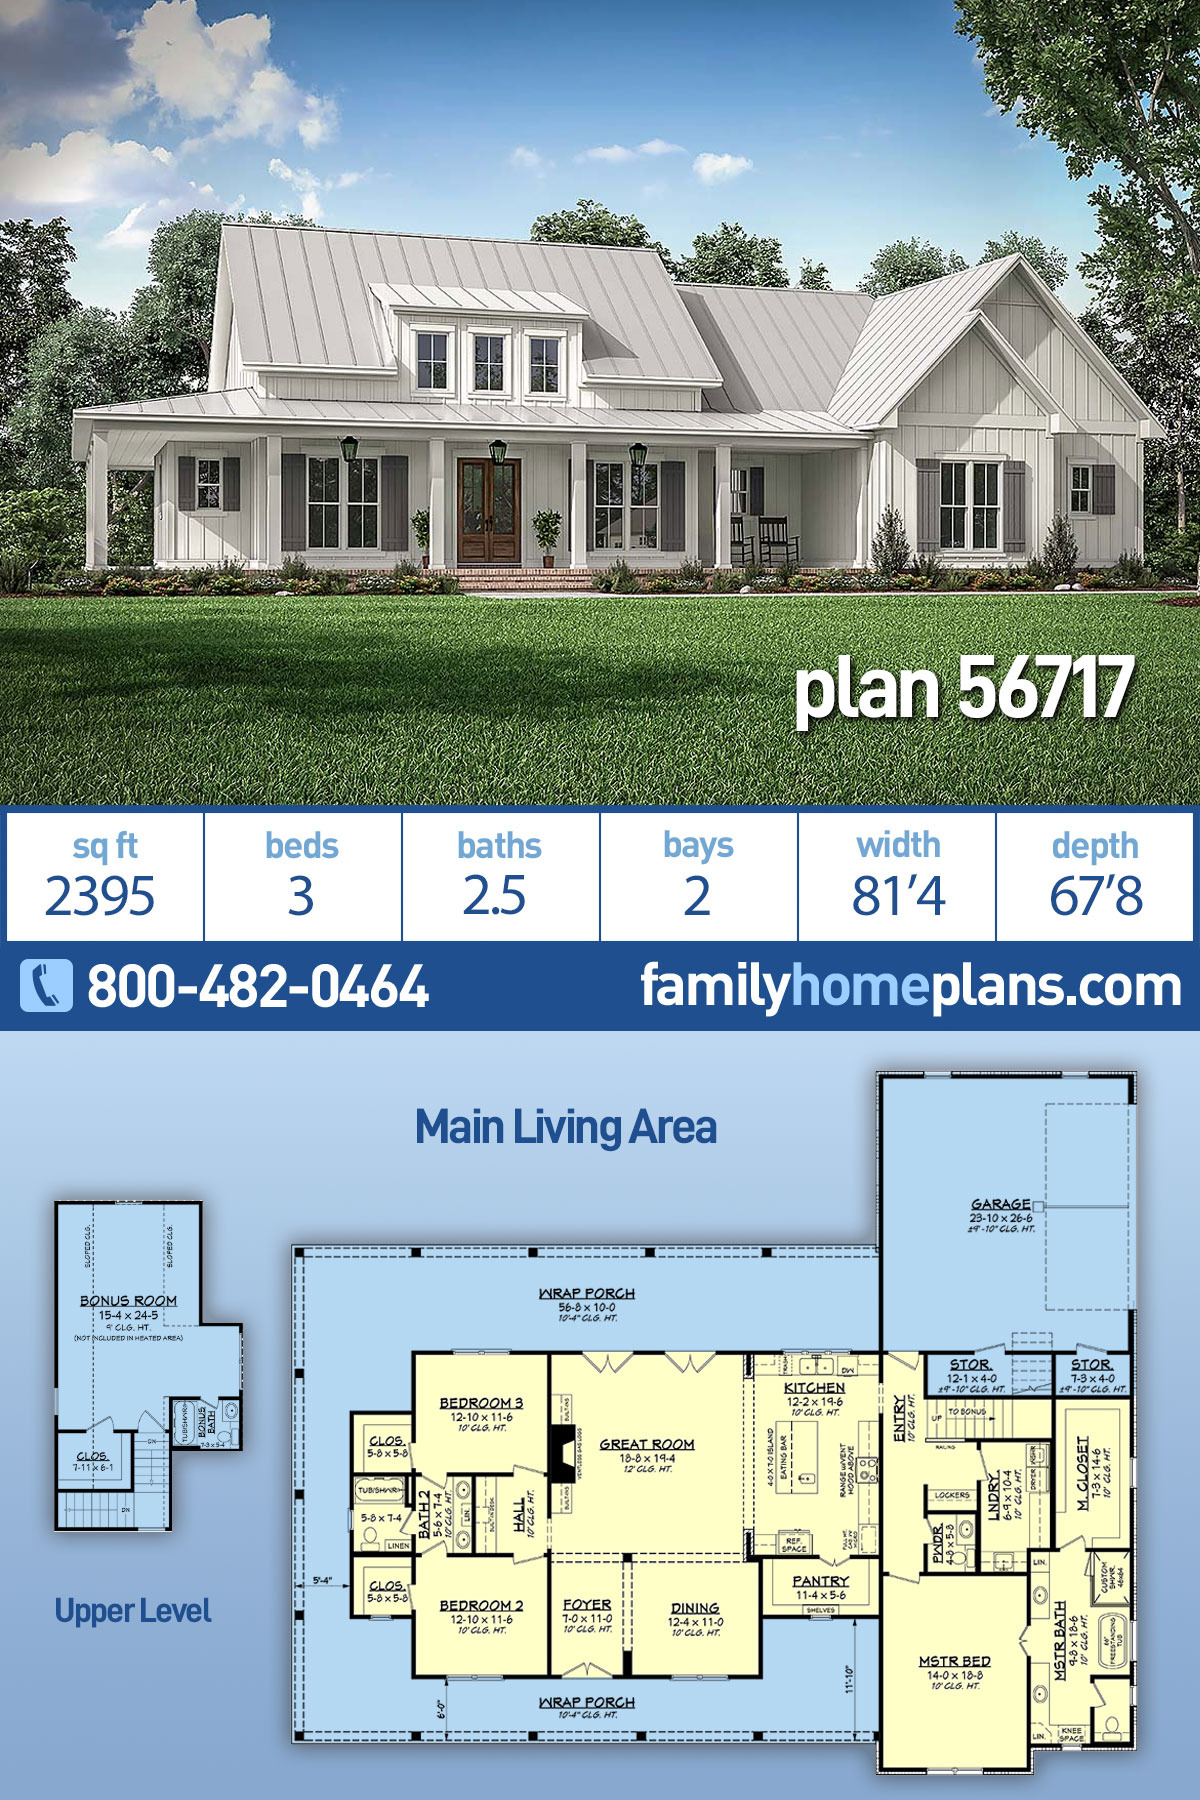 Cost to Build A 800 Sq Ft House Fresh Farmhouse Style House Plan with 3 Bed 3 Bath 2 Car Garage